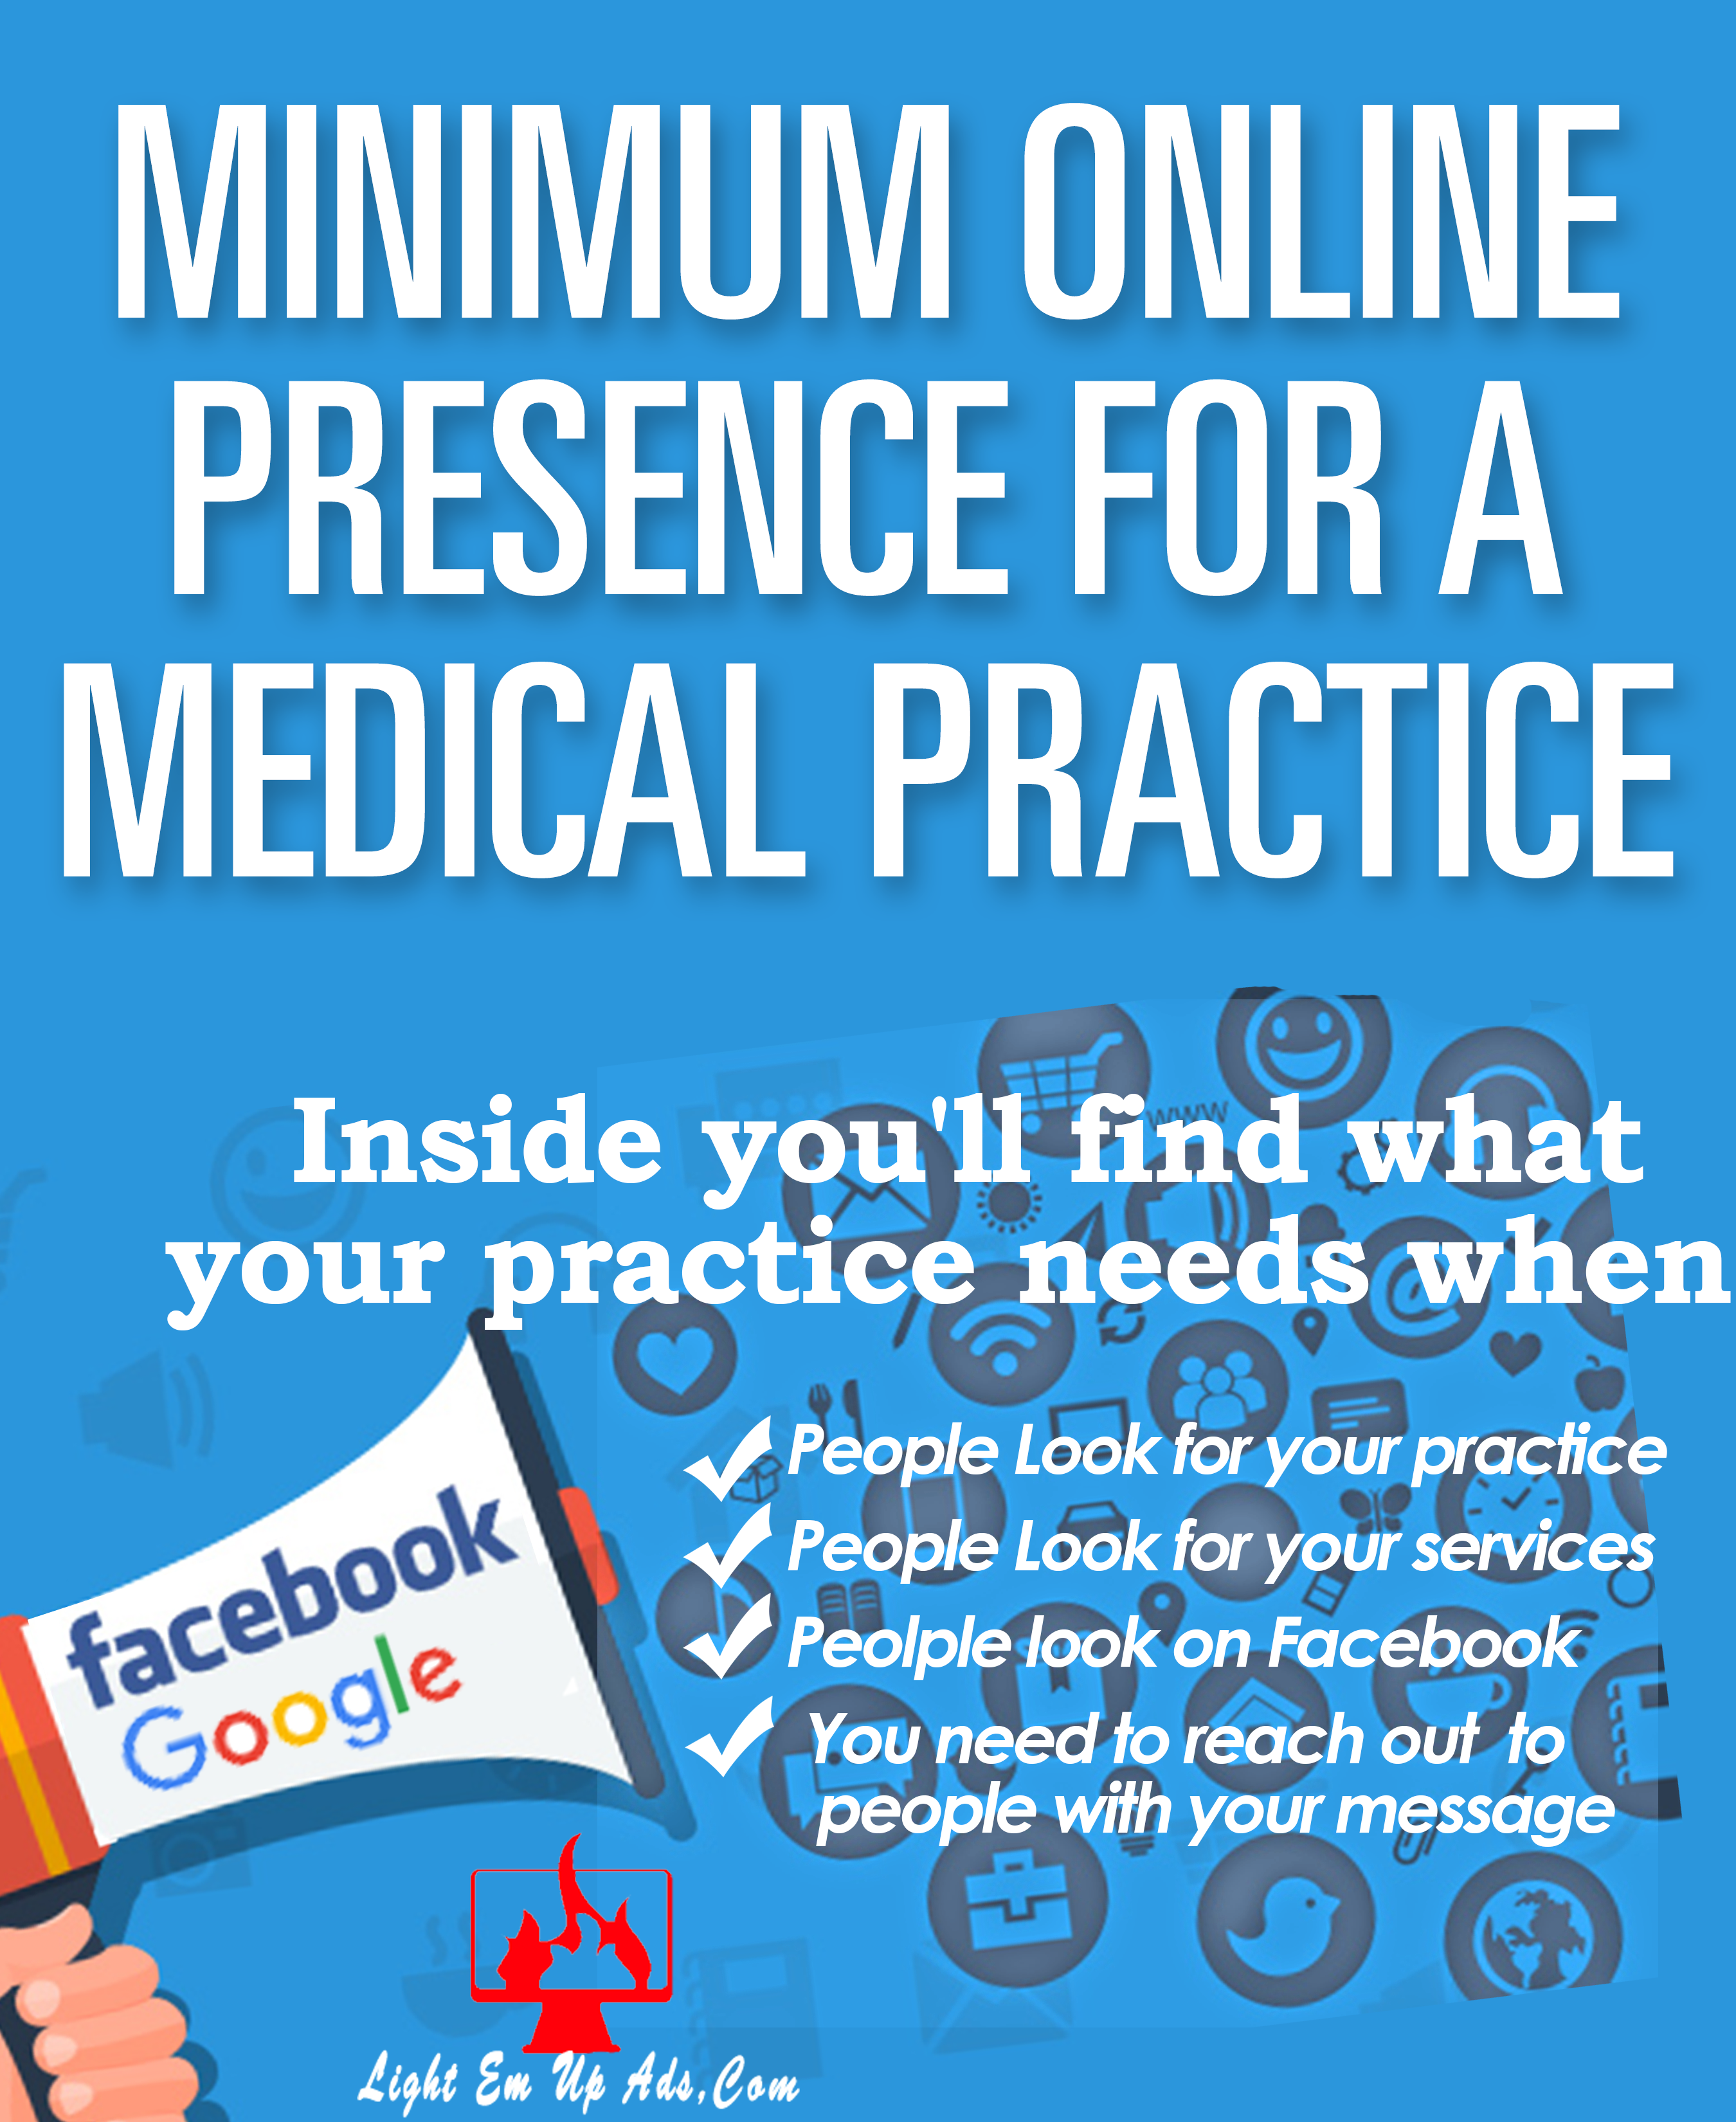 Minimum On-line Presence for Medical Practices.